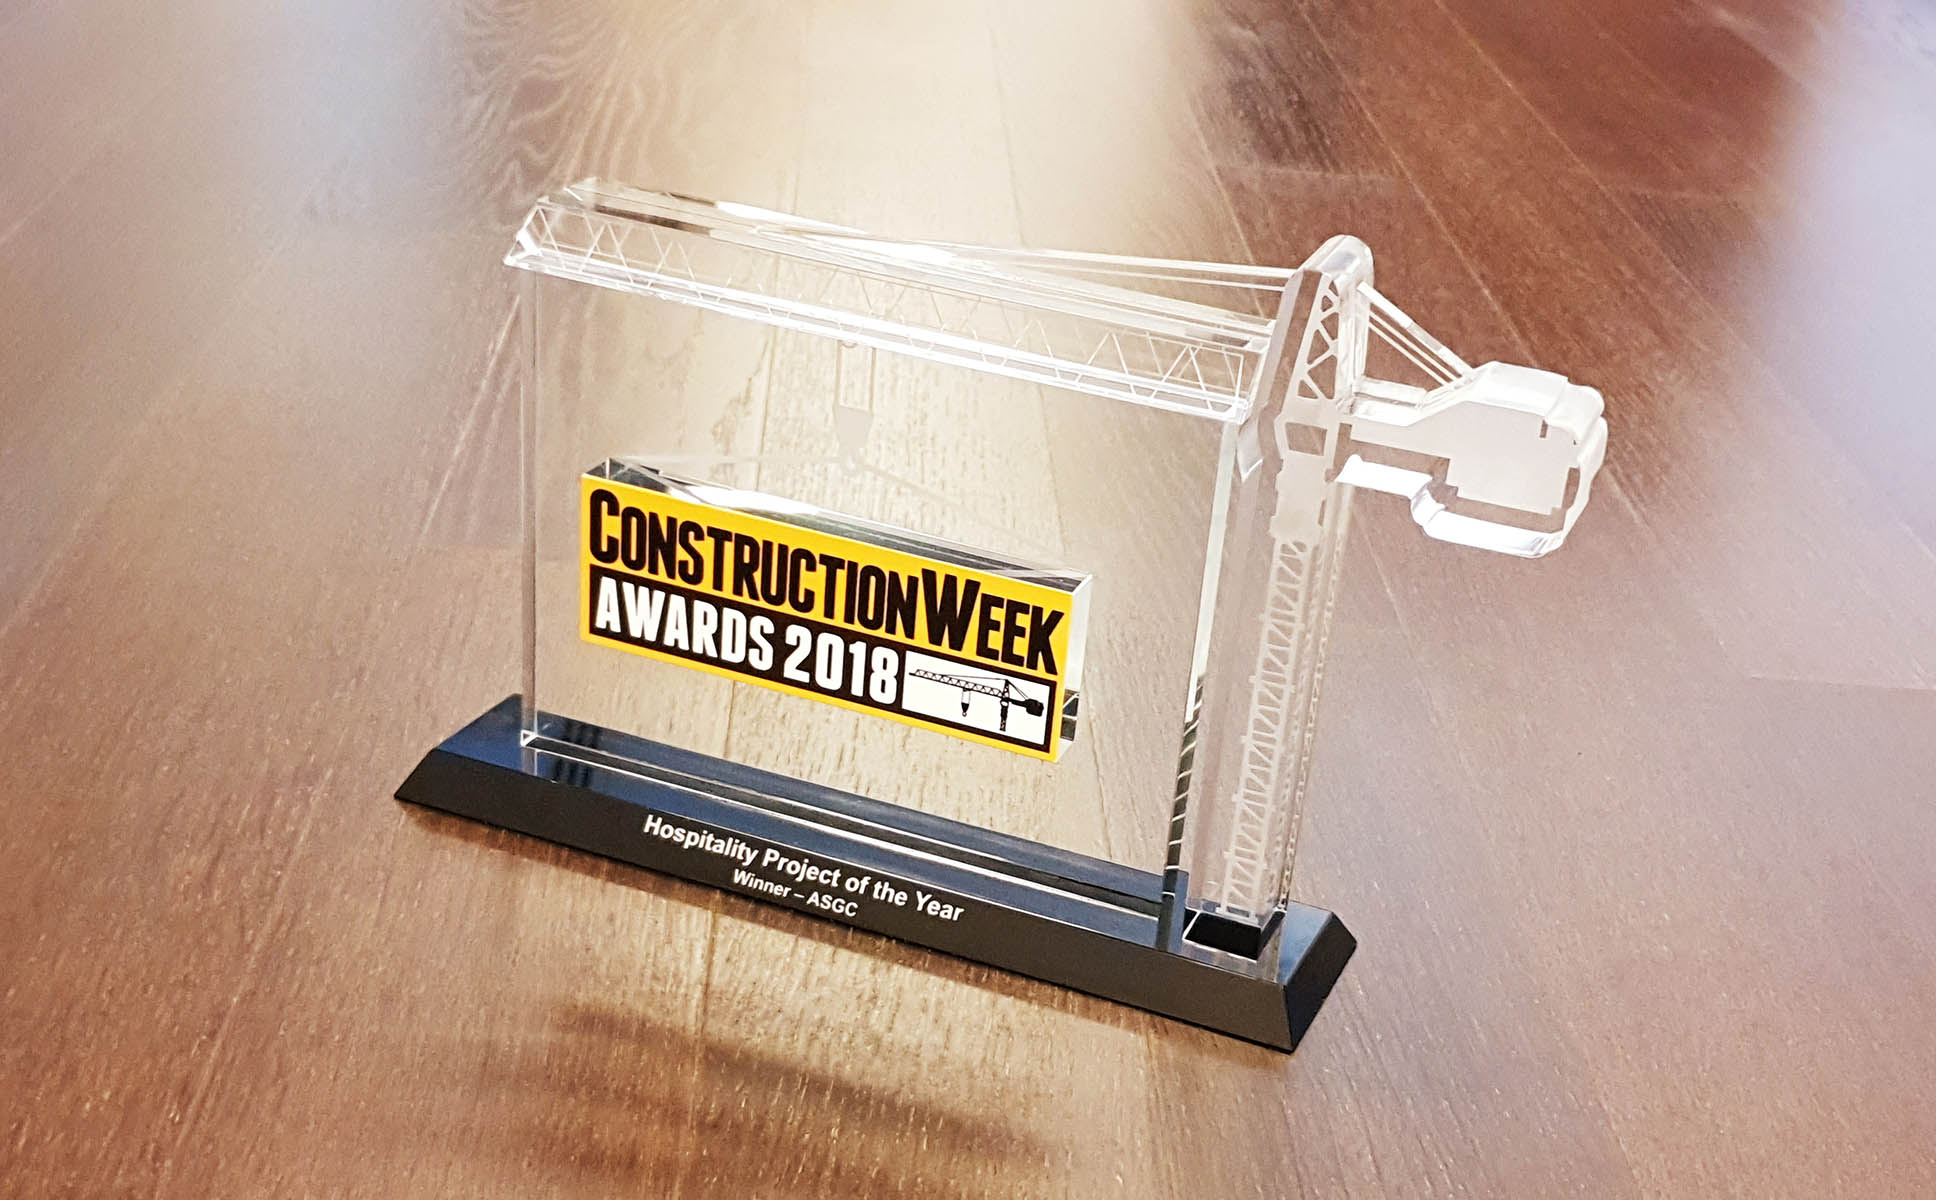 Dubai Arena – Hospitality Project of the Year Award 2018 by Construction Week